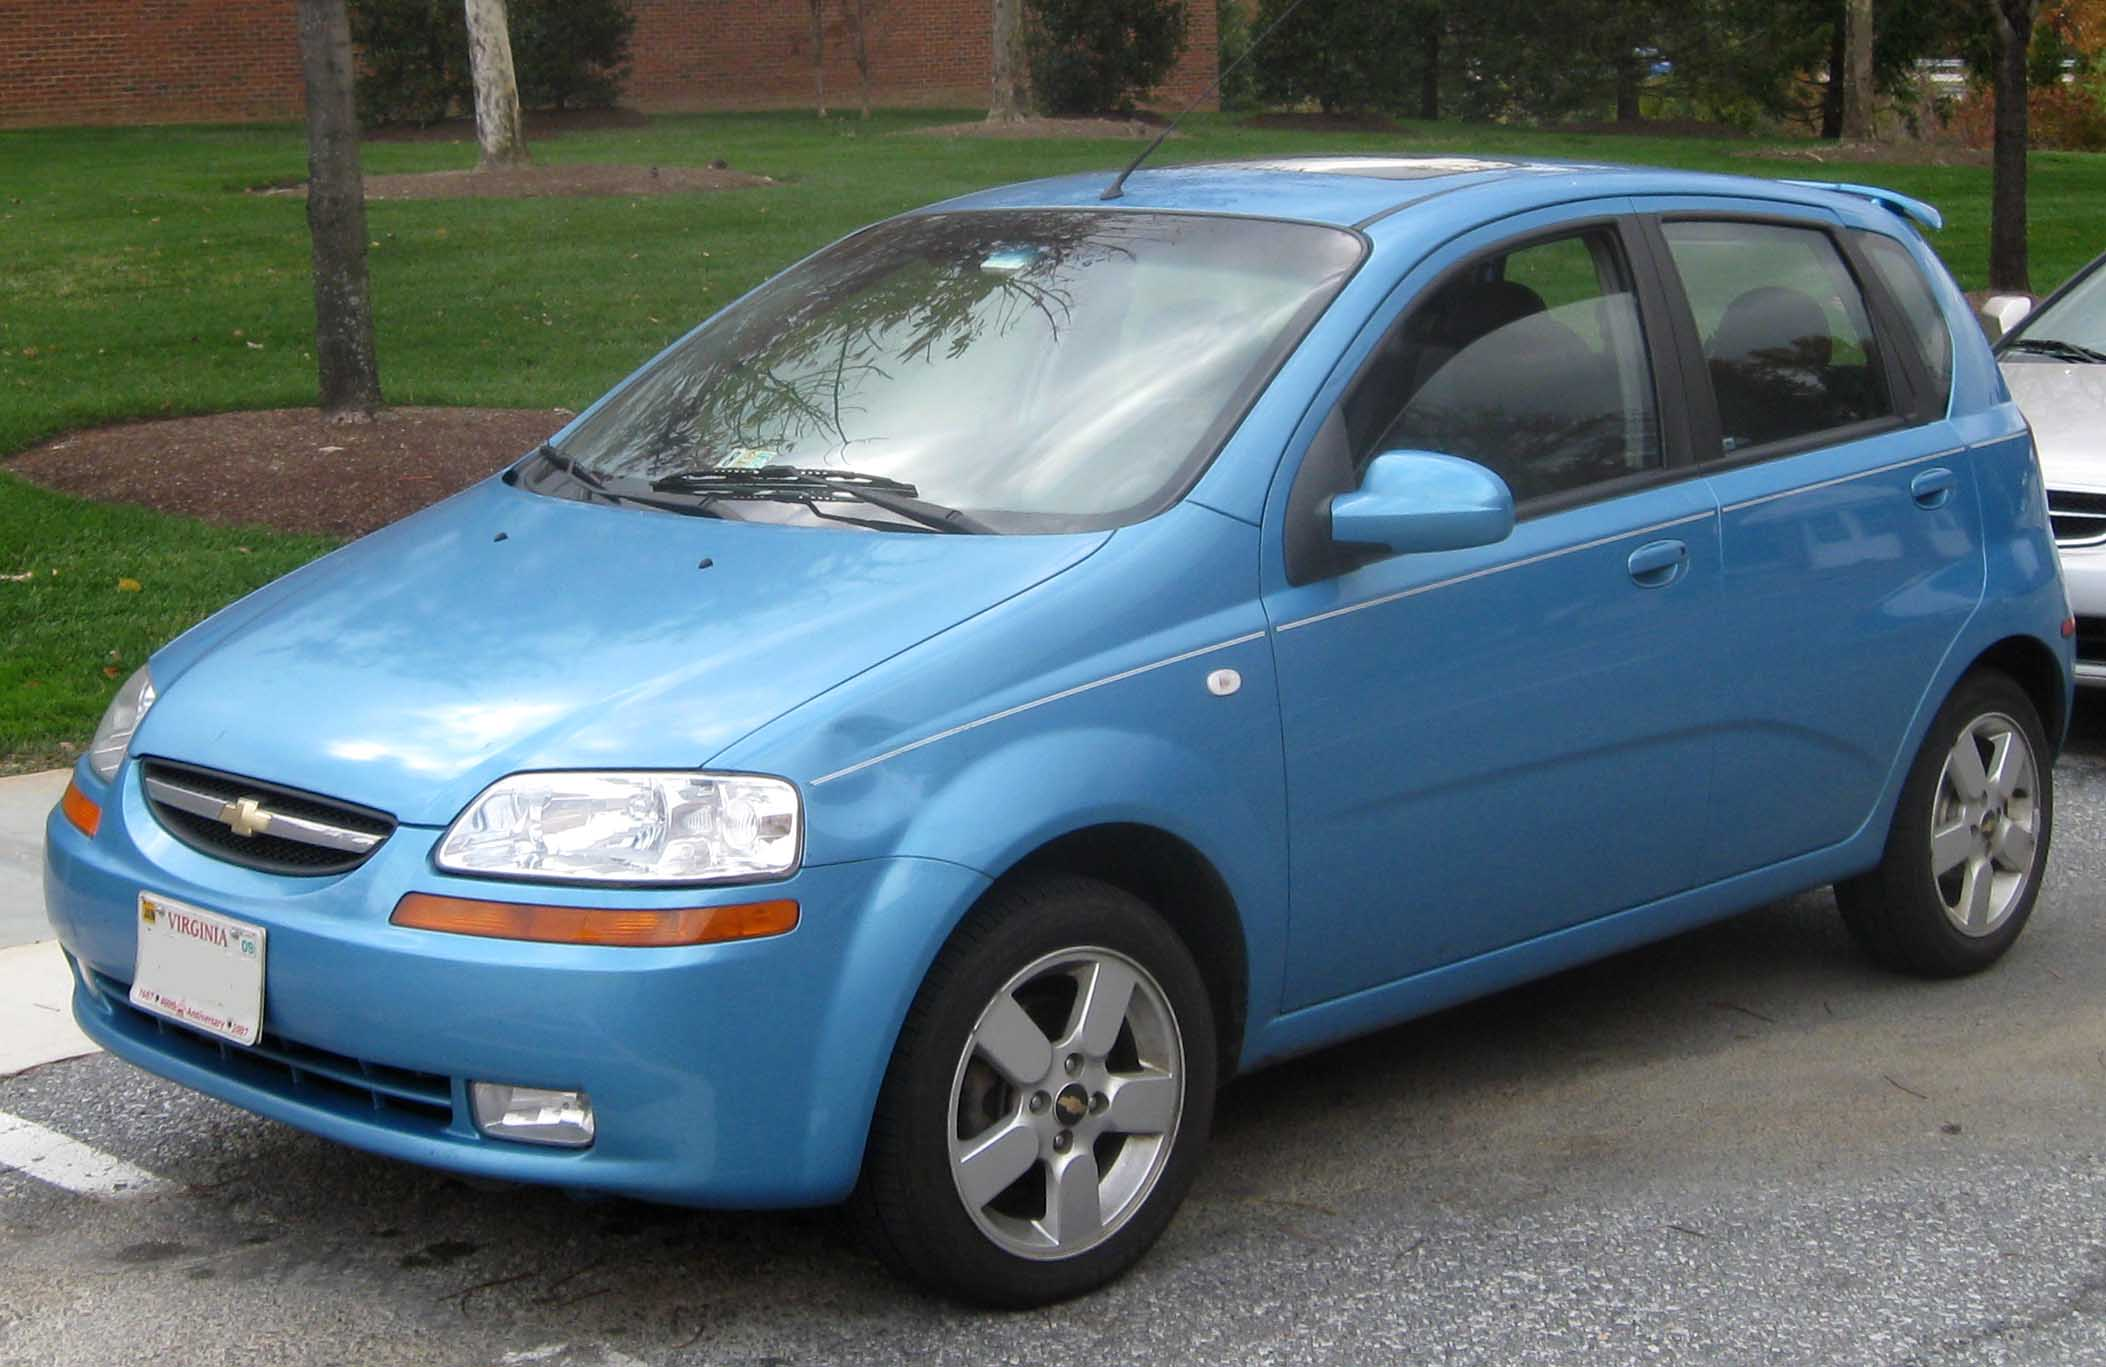 Chevrolet Aveo T200 Wikipedia 2004 Trailblazer Fuse Box Location